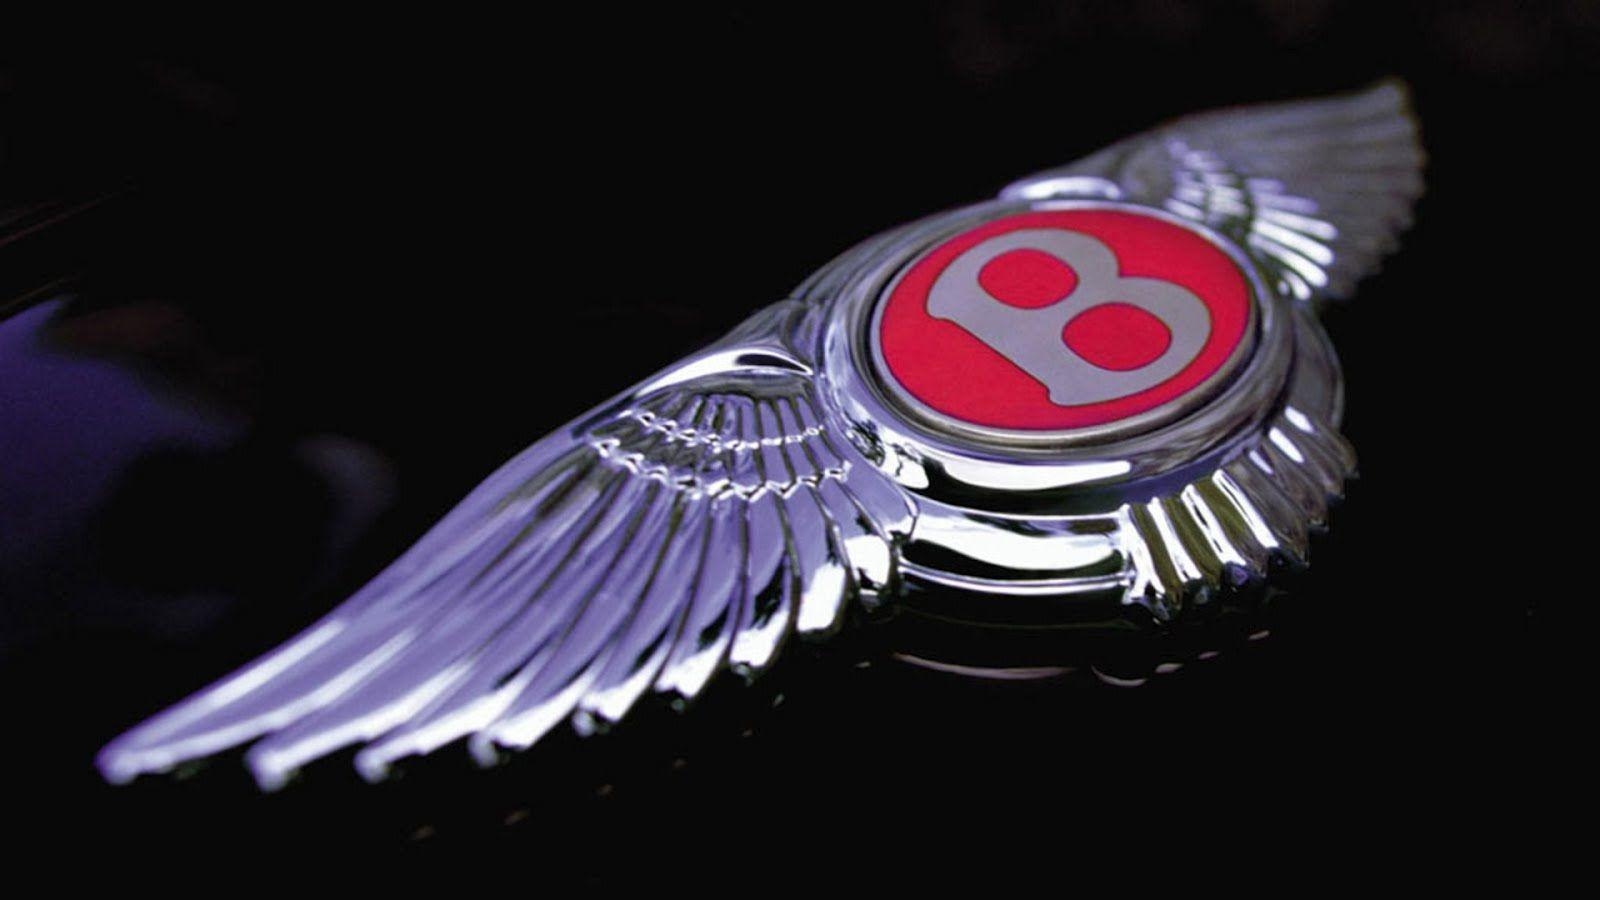 HD WALLPAPERS FOR DESKTOP: bently hd logo